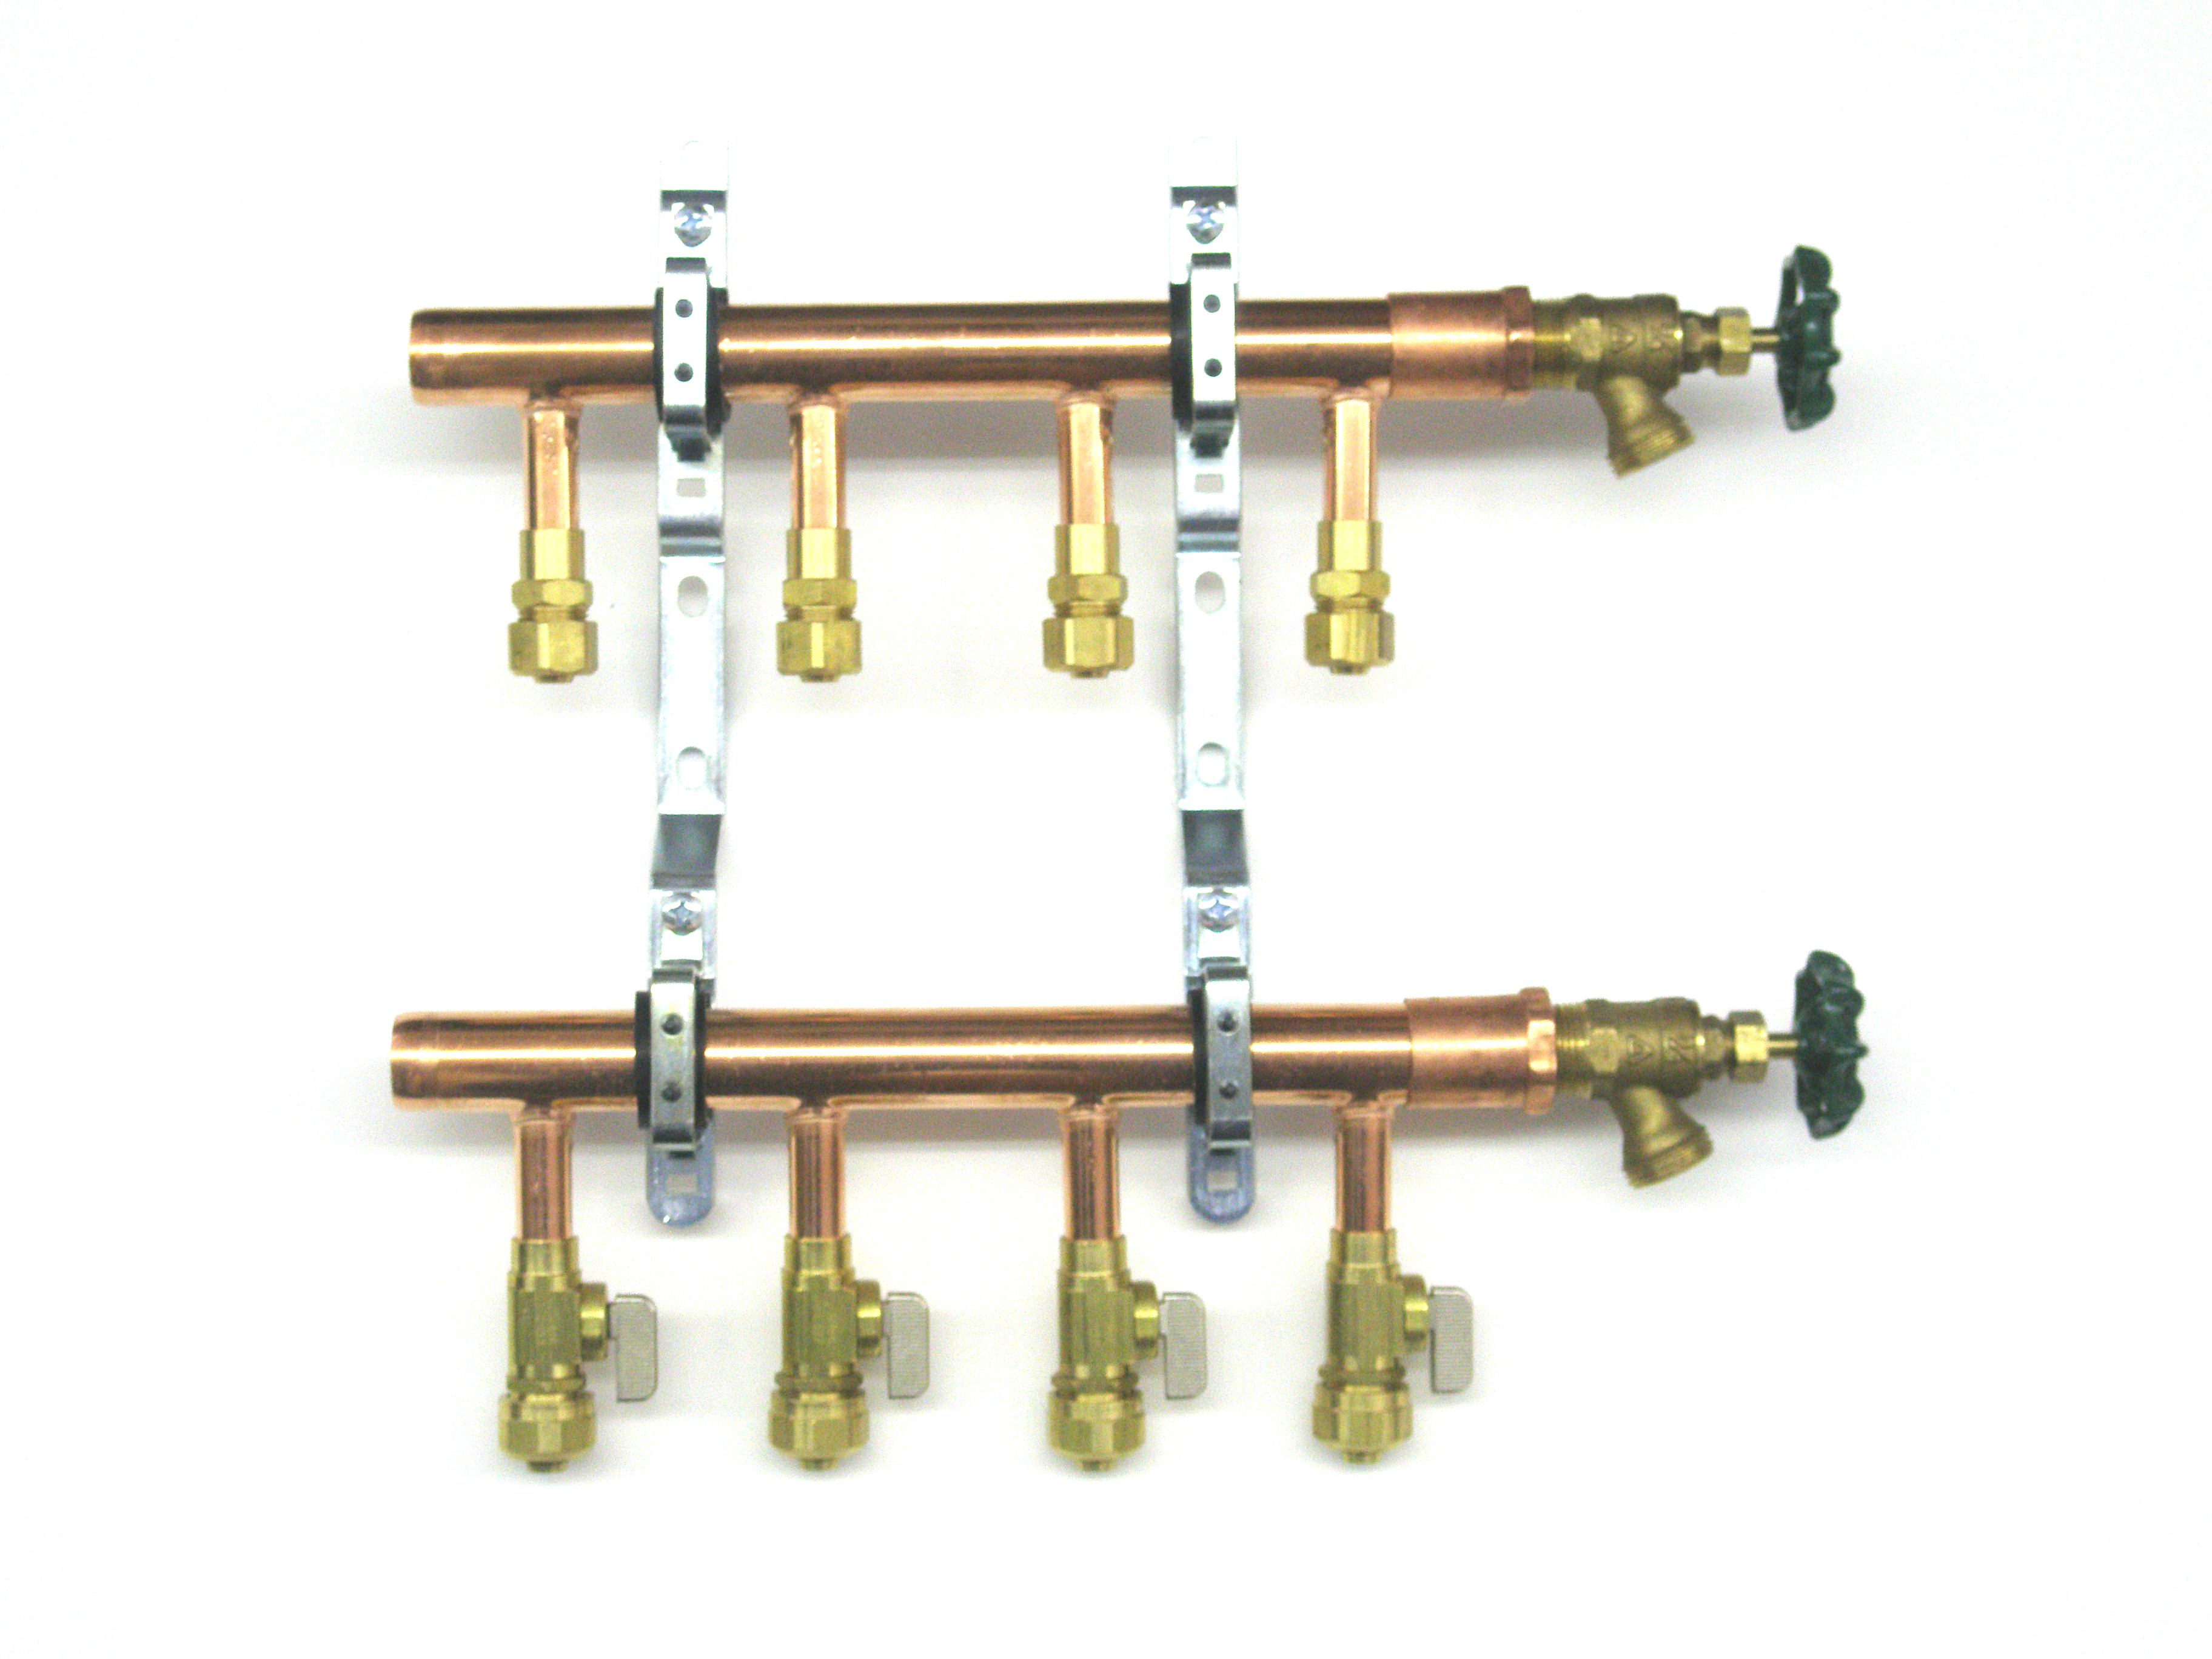 Copper Unassembled Pex Manifolds